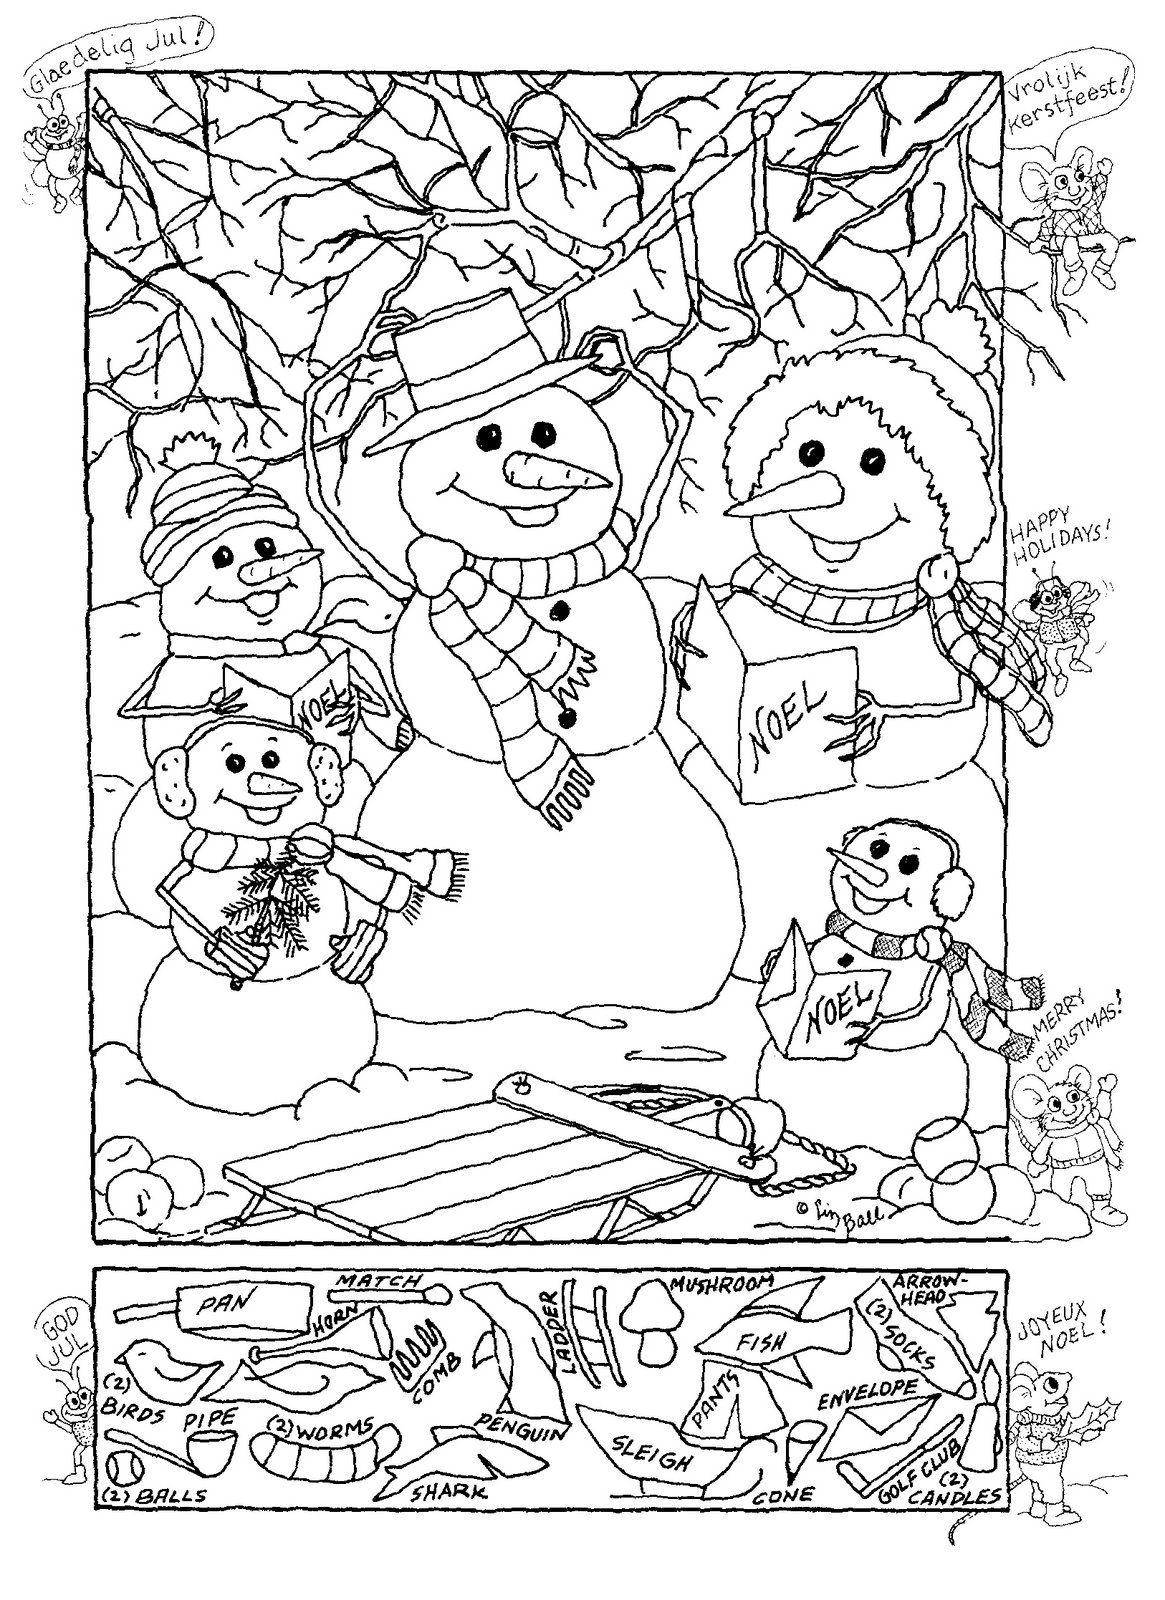 Snowman Hidden Picture Puzzle For Christmas! | Christmas